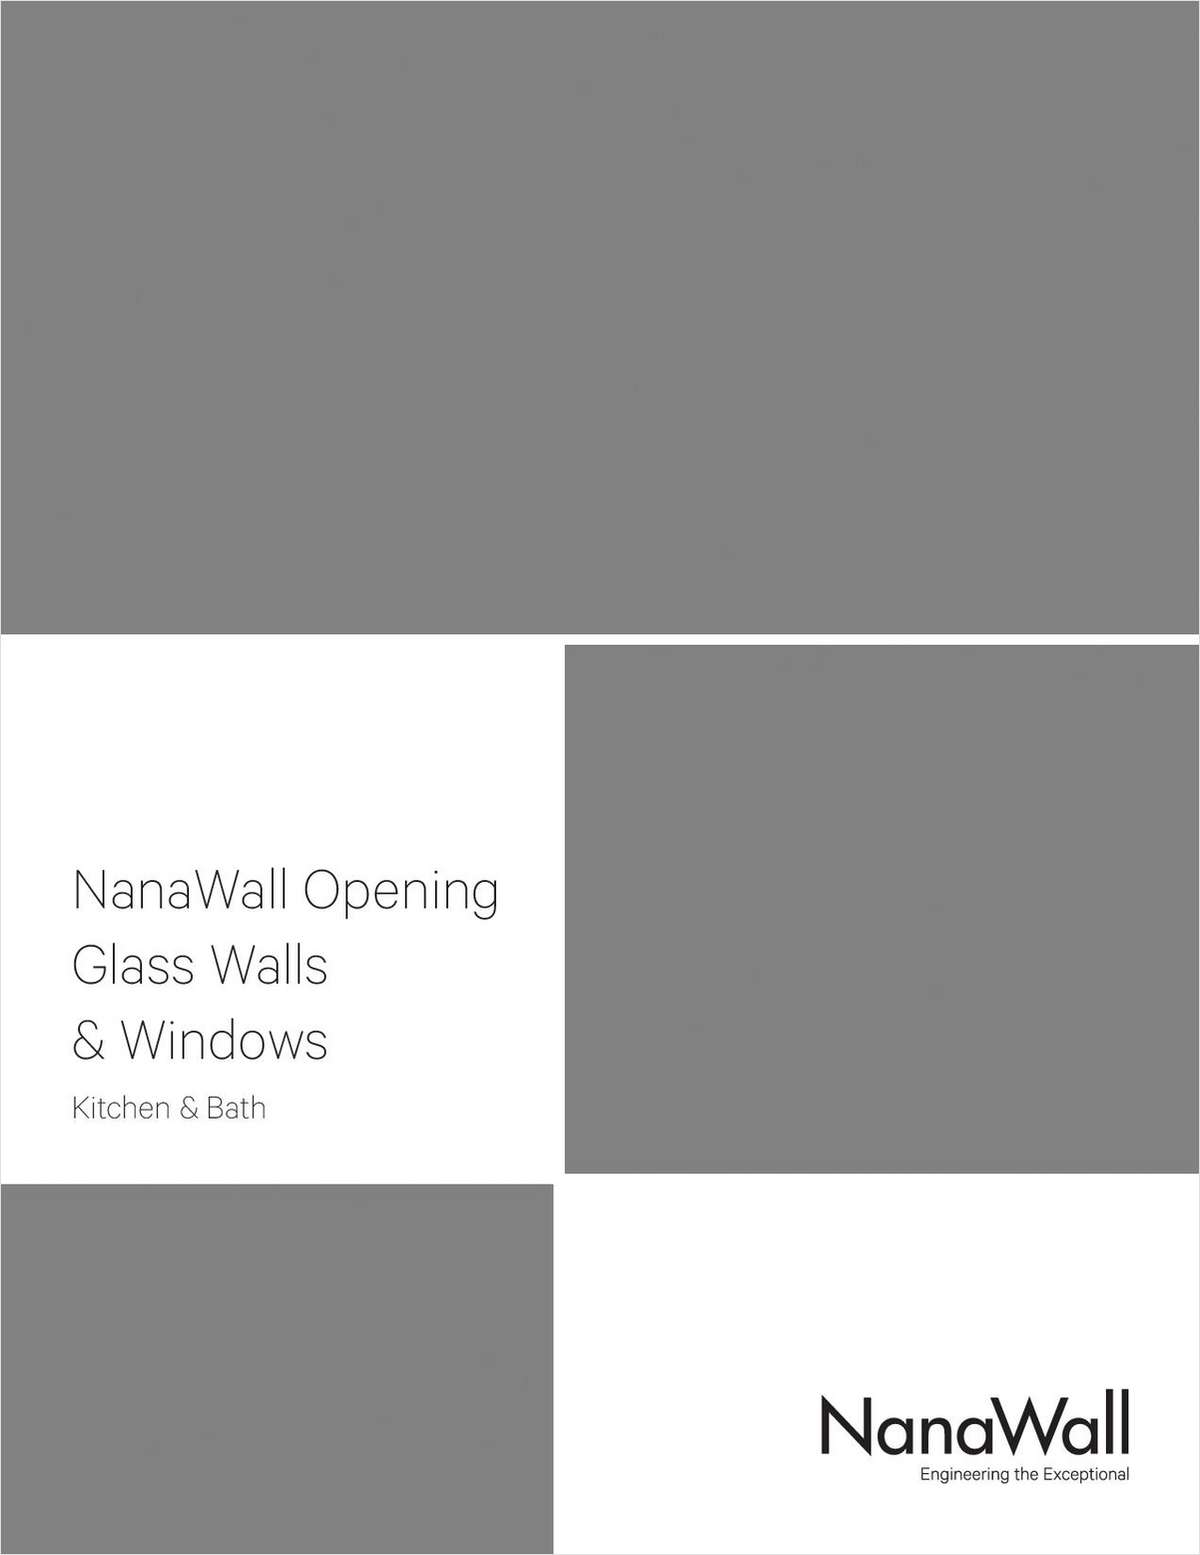 NanaWall Opening Glass Walls & Windows for Kitchens & Baths